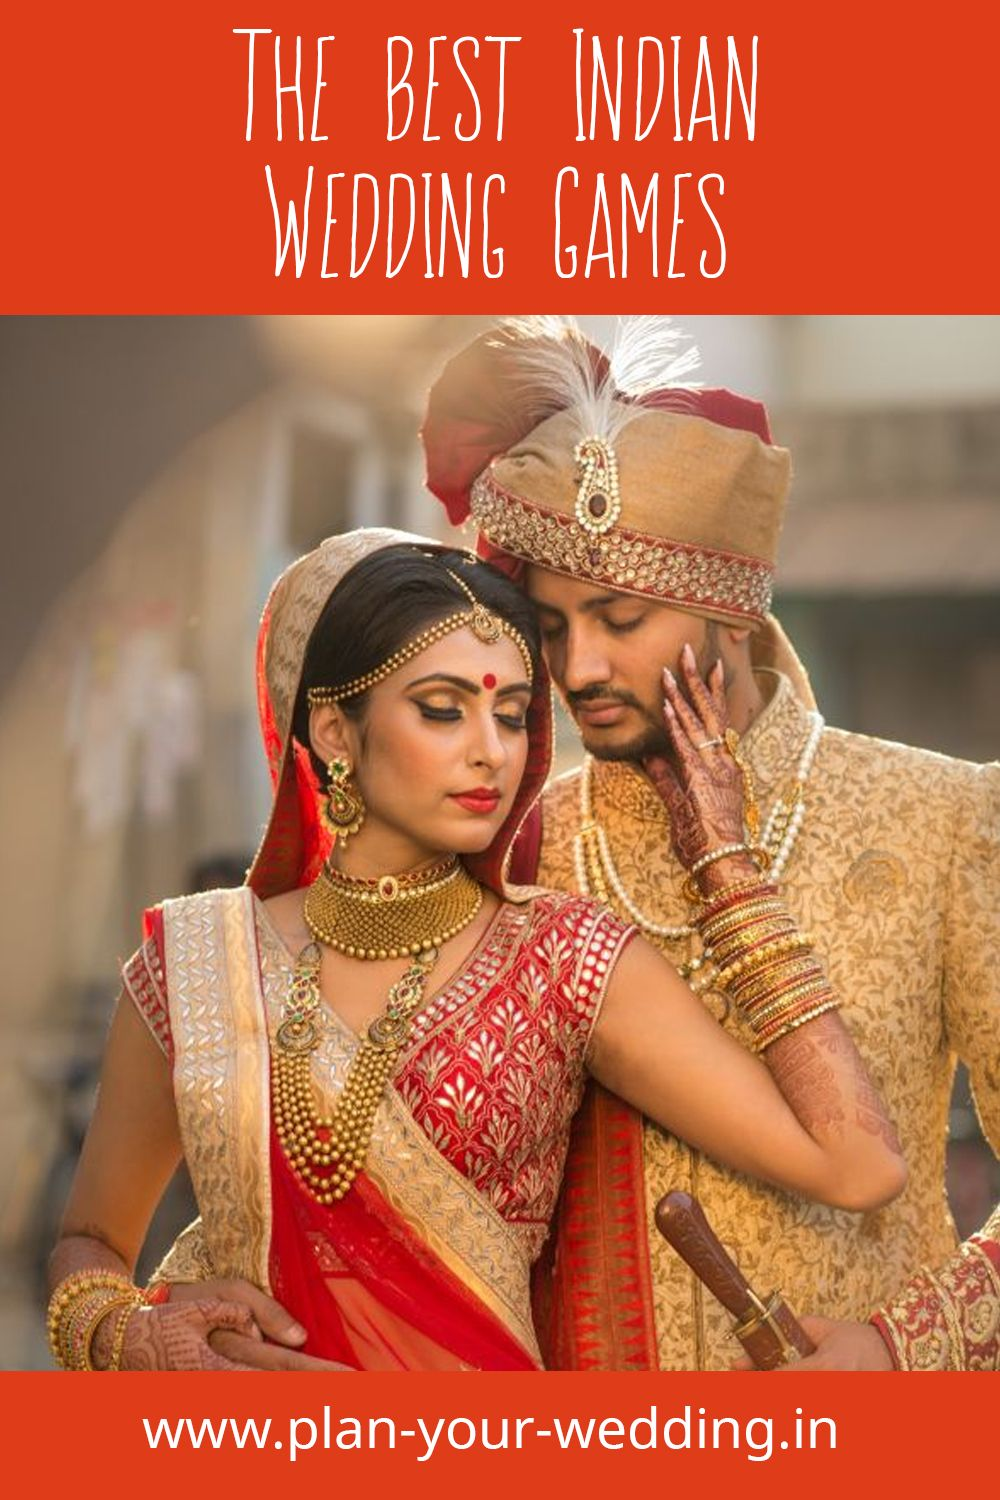 The Best Indian Wedding Games In 2020 Indian Wedding Photography Poses Indian Wedding Couple Indian Wedding Poses